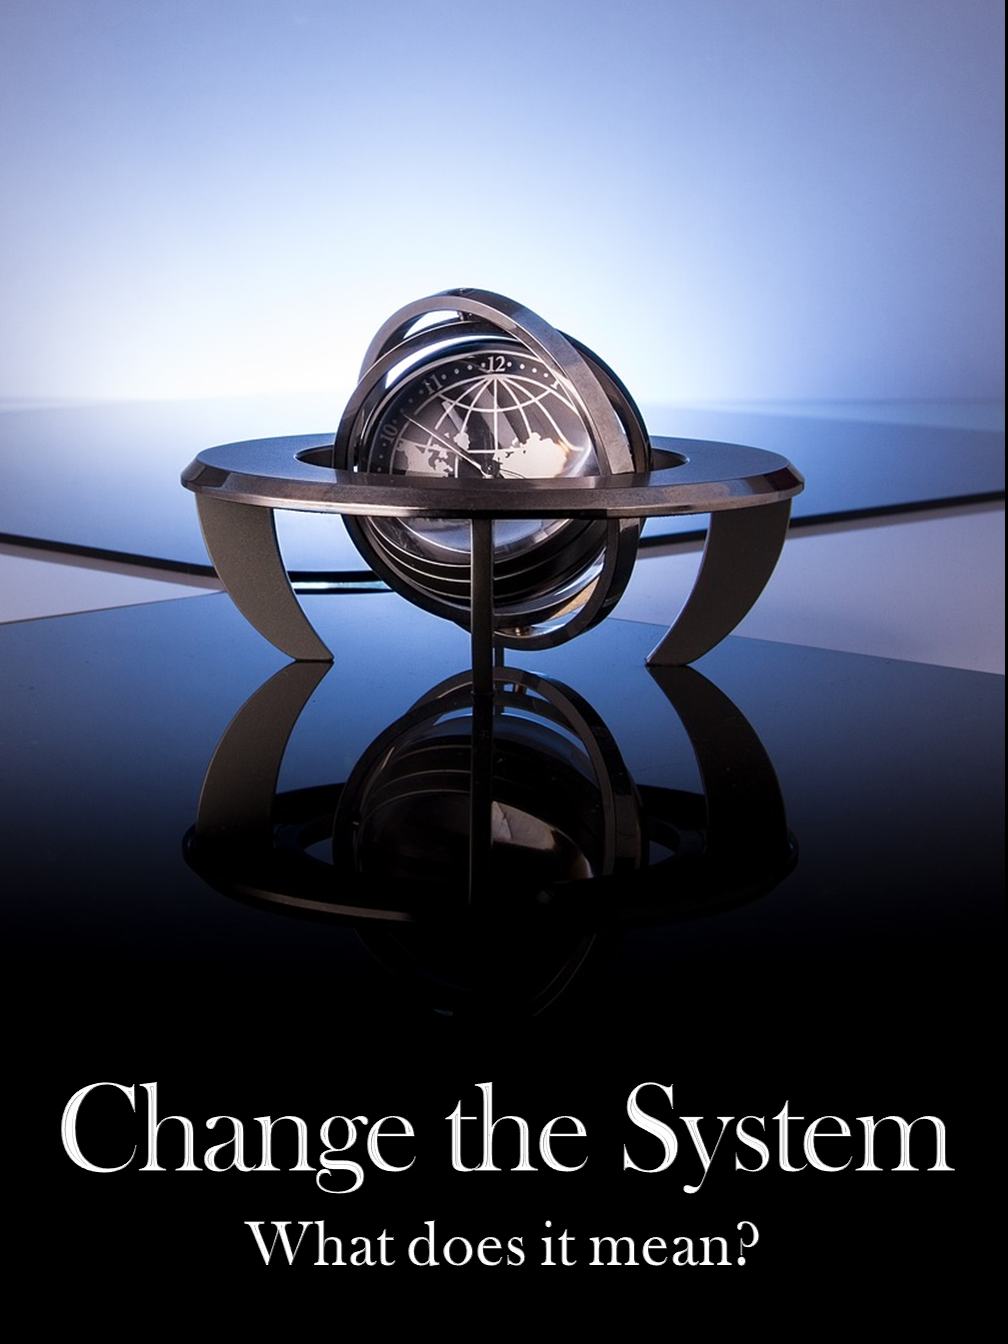 Change the System